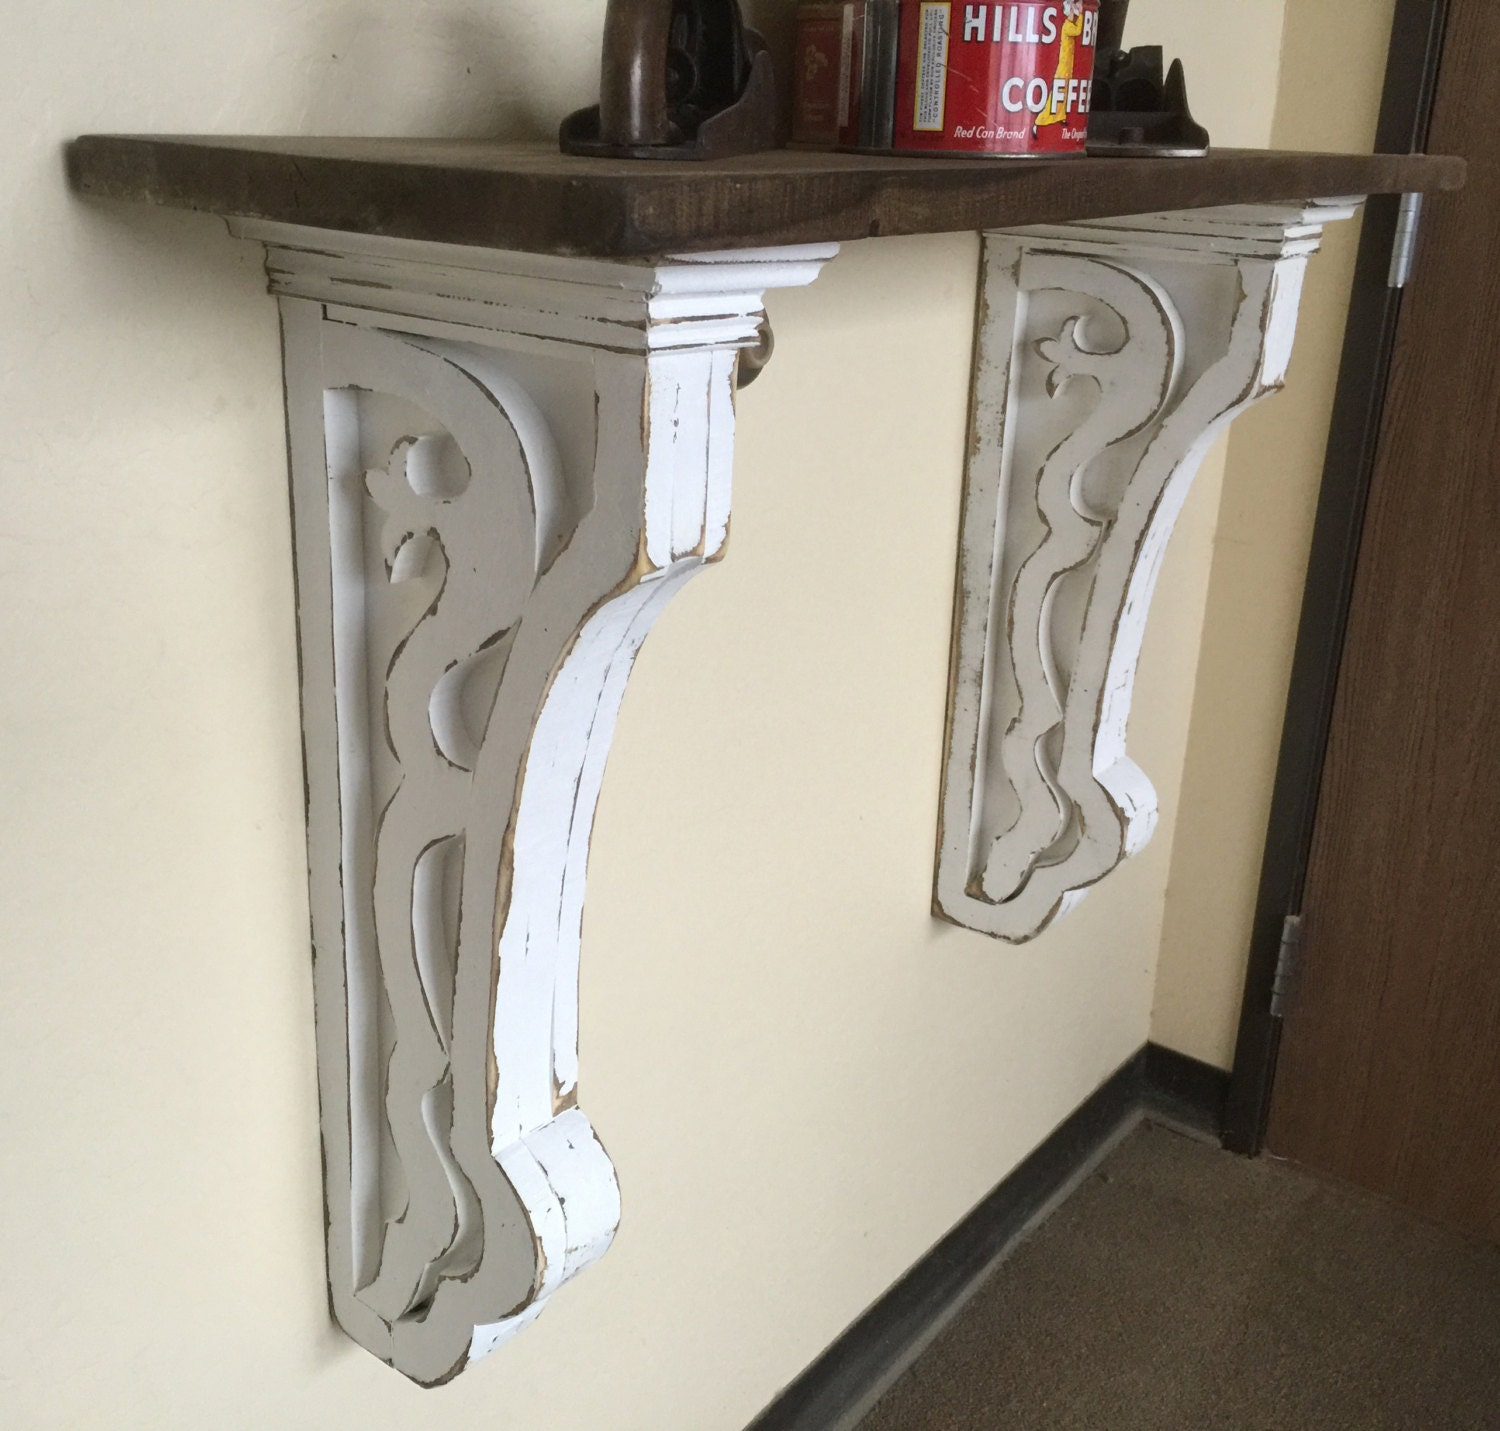 Antique style corbellarge corbels with shelf hallway corbel zoom amipublicfo Image collections